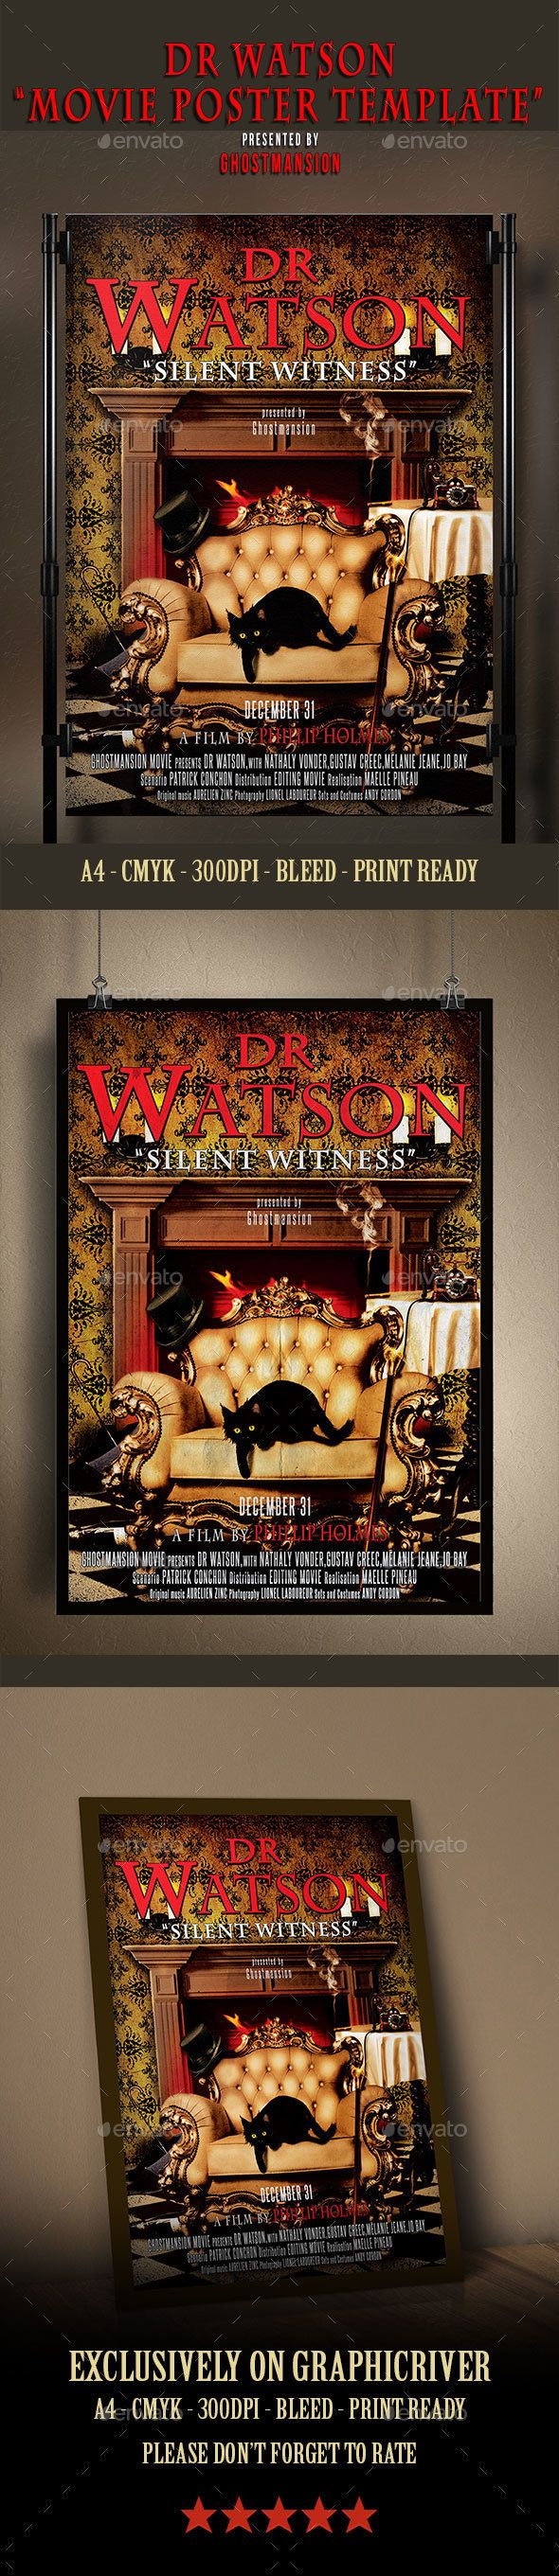 Dr Watson Movie Or Theater Poster Template